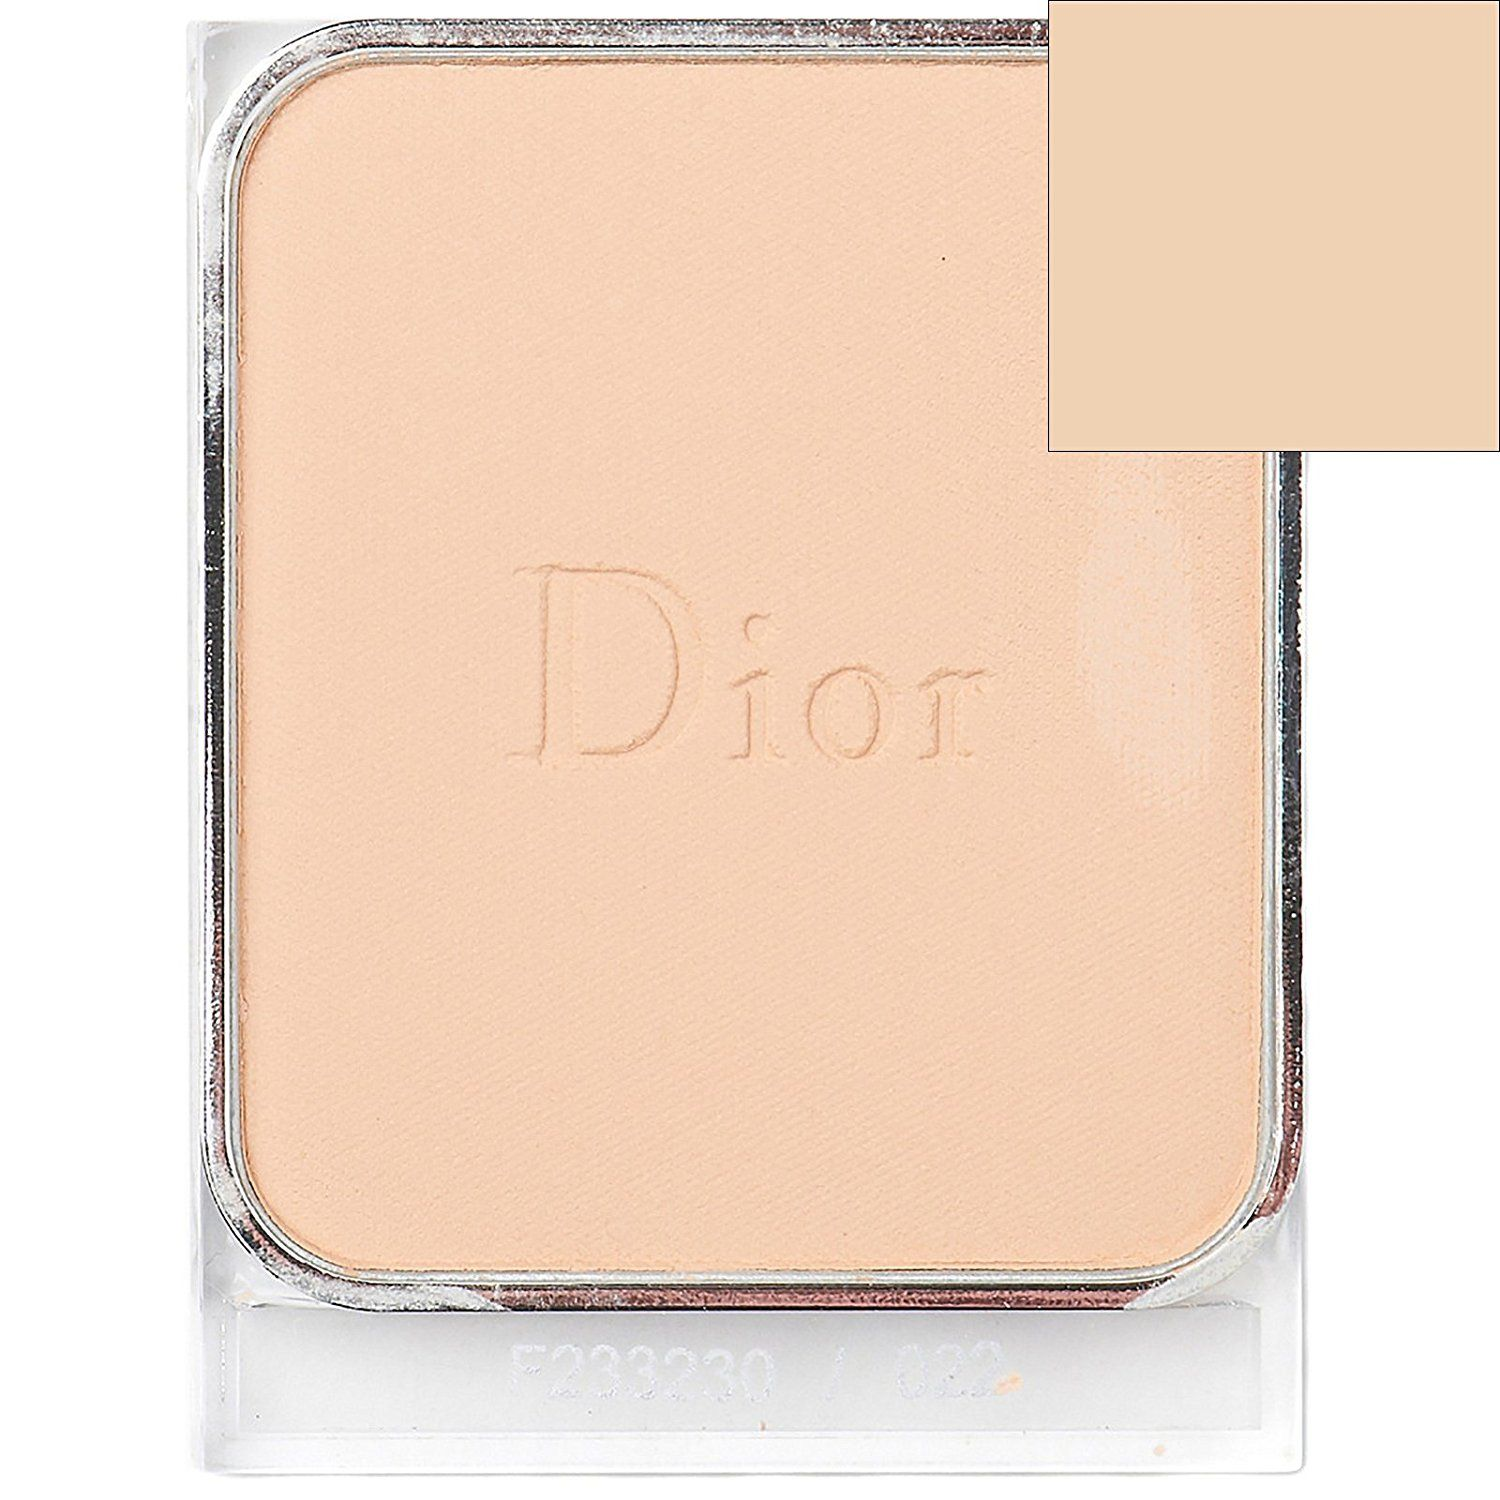 DIORSKIN FOREVER compact refill N010 10 gr >>> For more